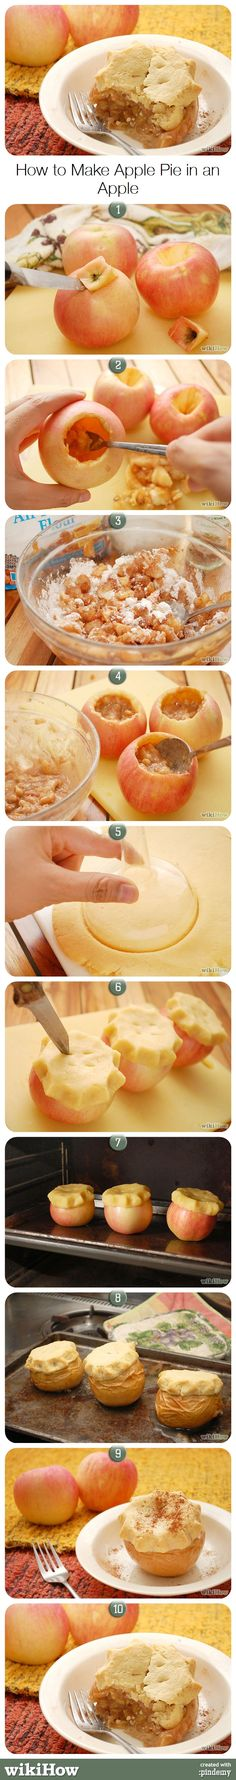 How to Make Apple Pie in an Apple